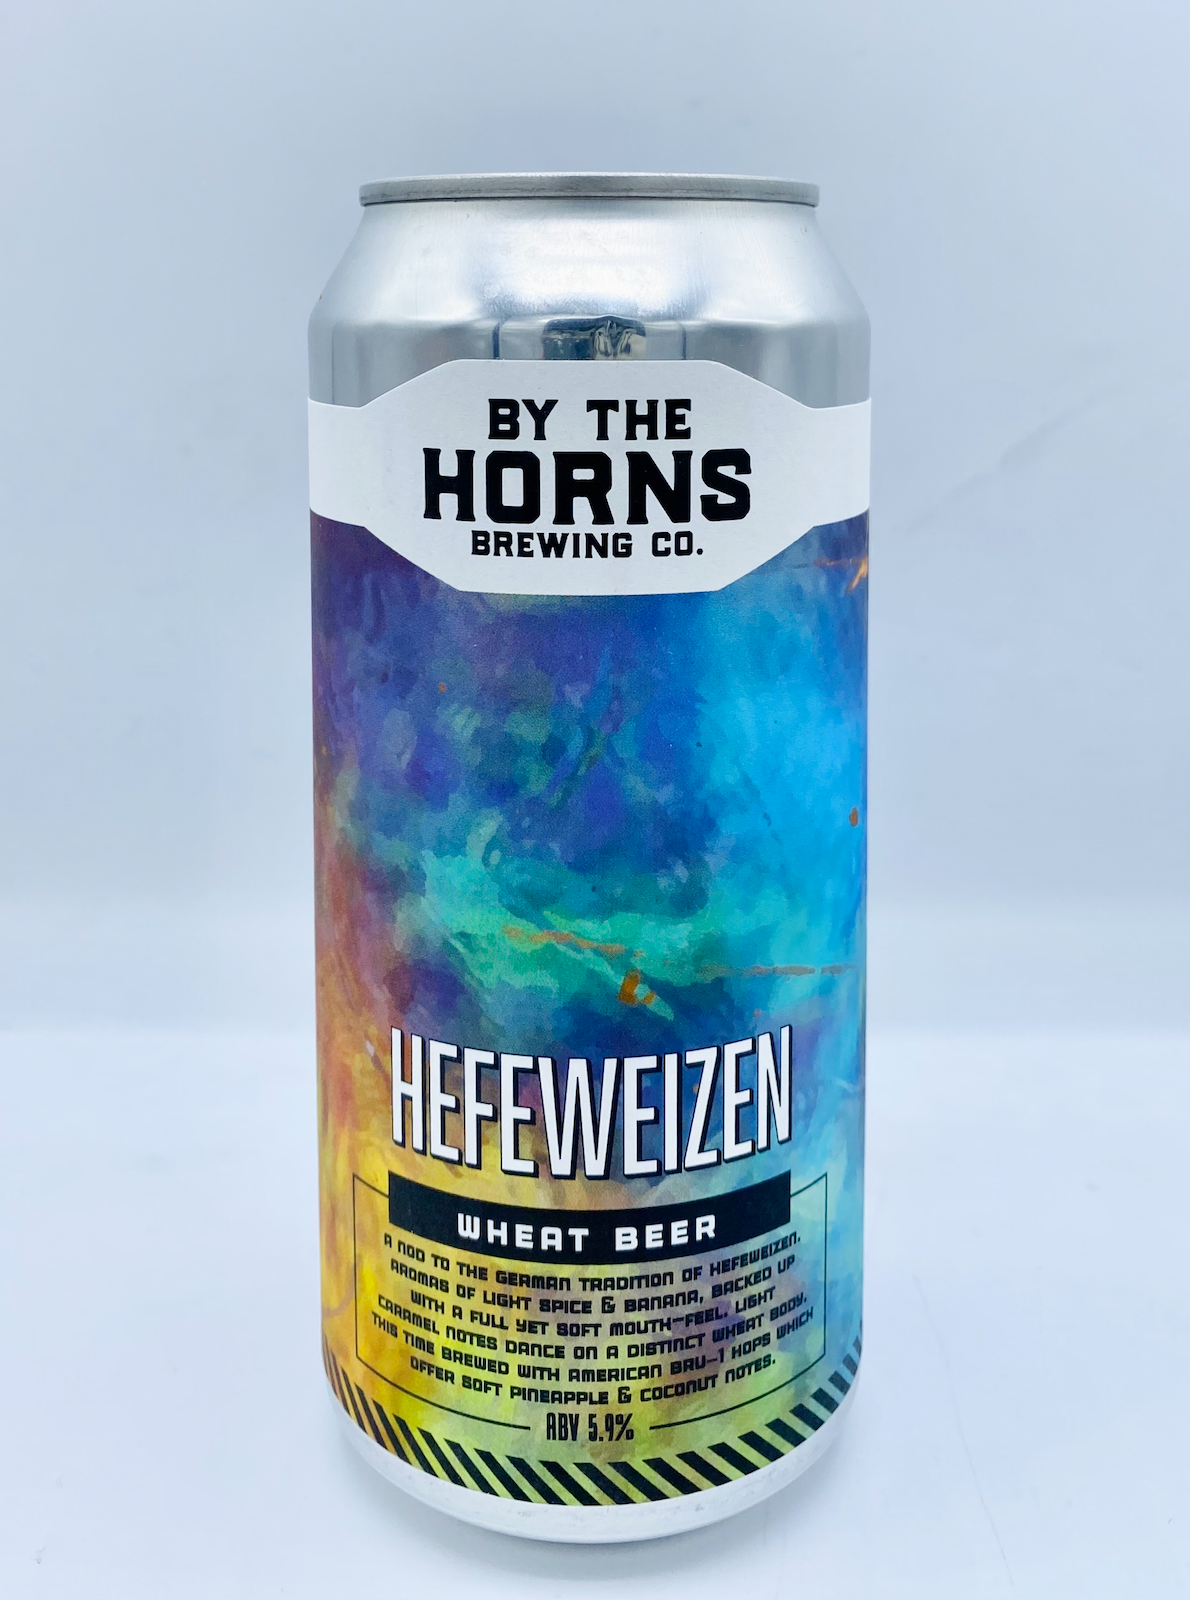 By The Horns Brewing Co - Hefeweizen 5.9%